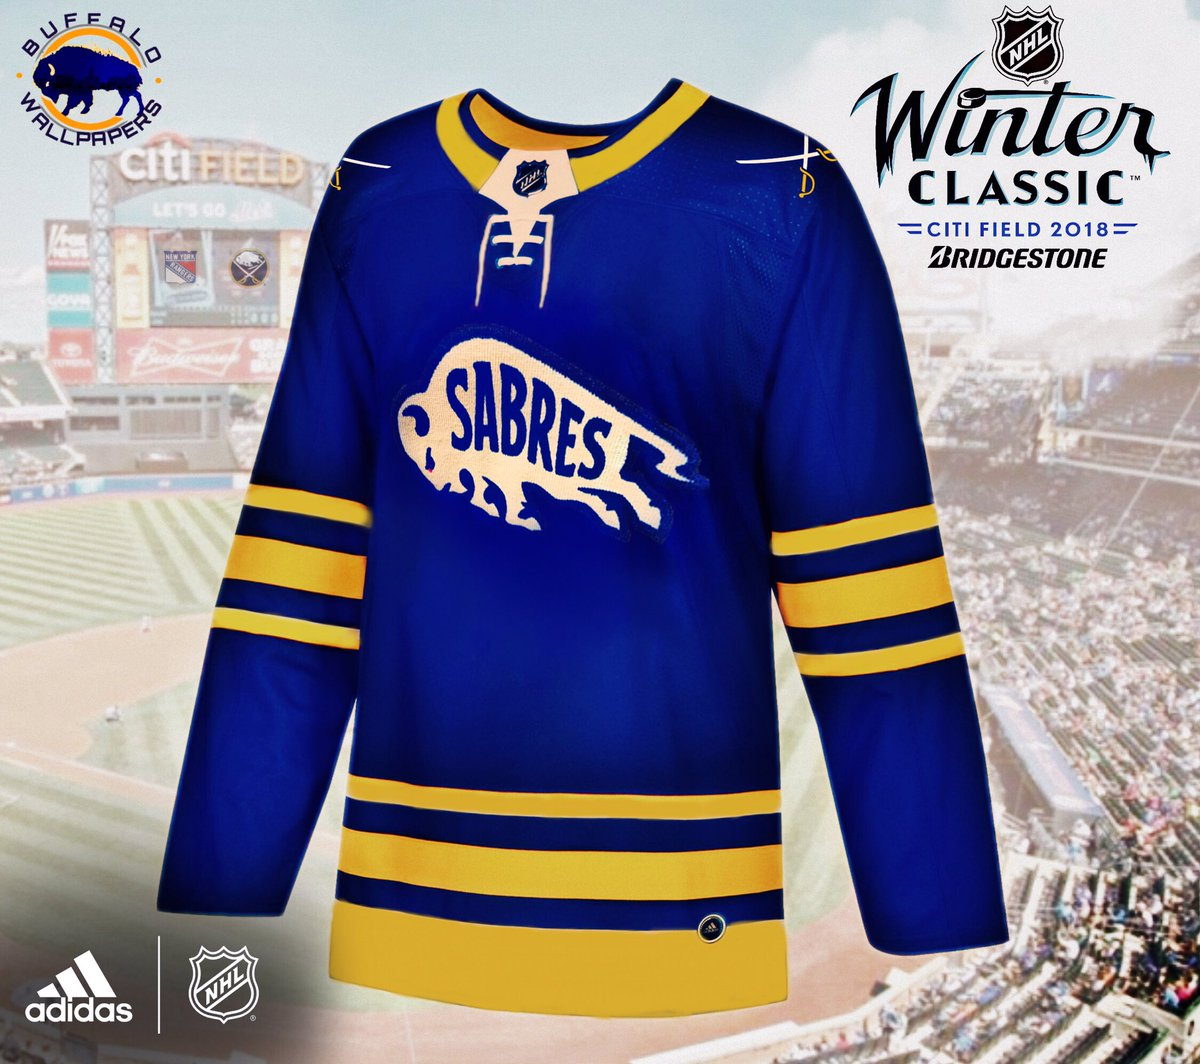 Buff2008 Buffalo Sabres – Winter Classic 2018 – Christopher Hyzy Buffalo  Wallpapers on Twitter ... 5c6849391